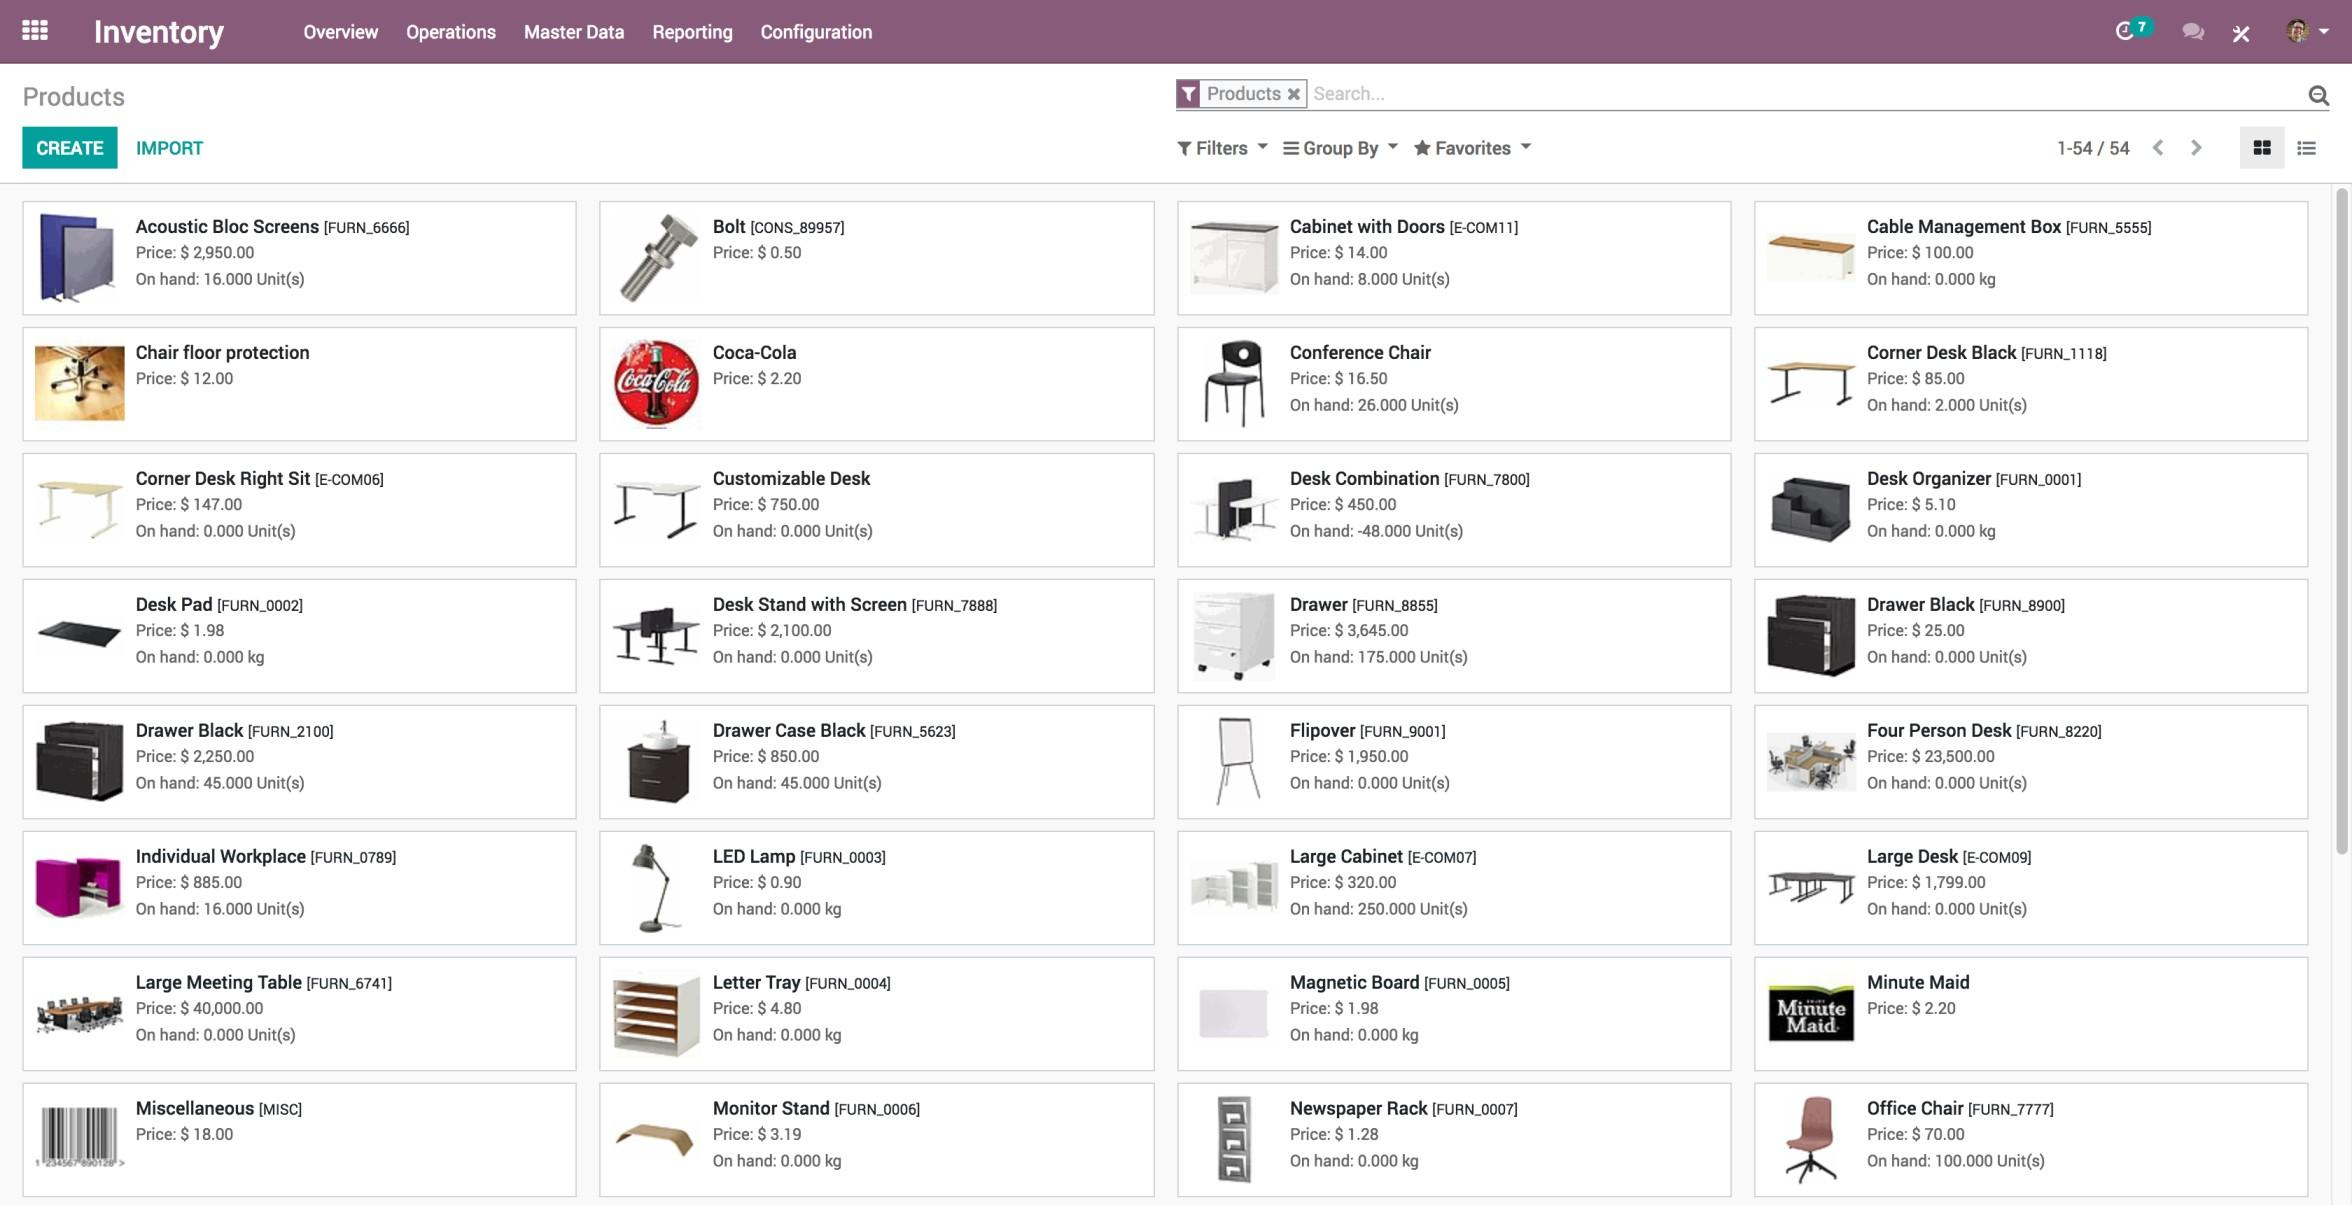 Odoo Inventory-Inventory_Products list